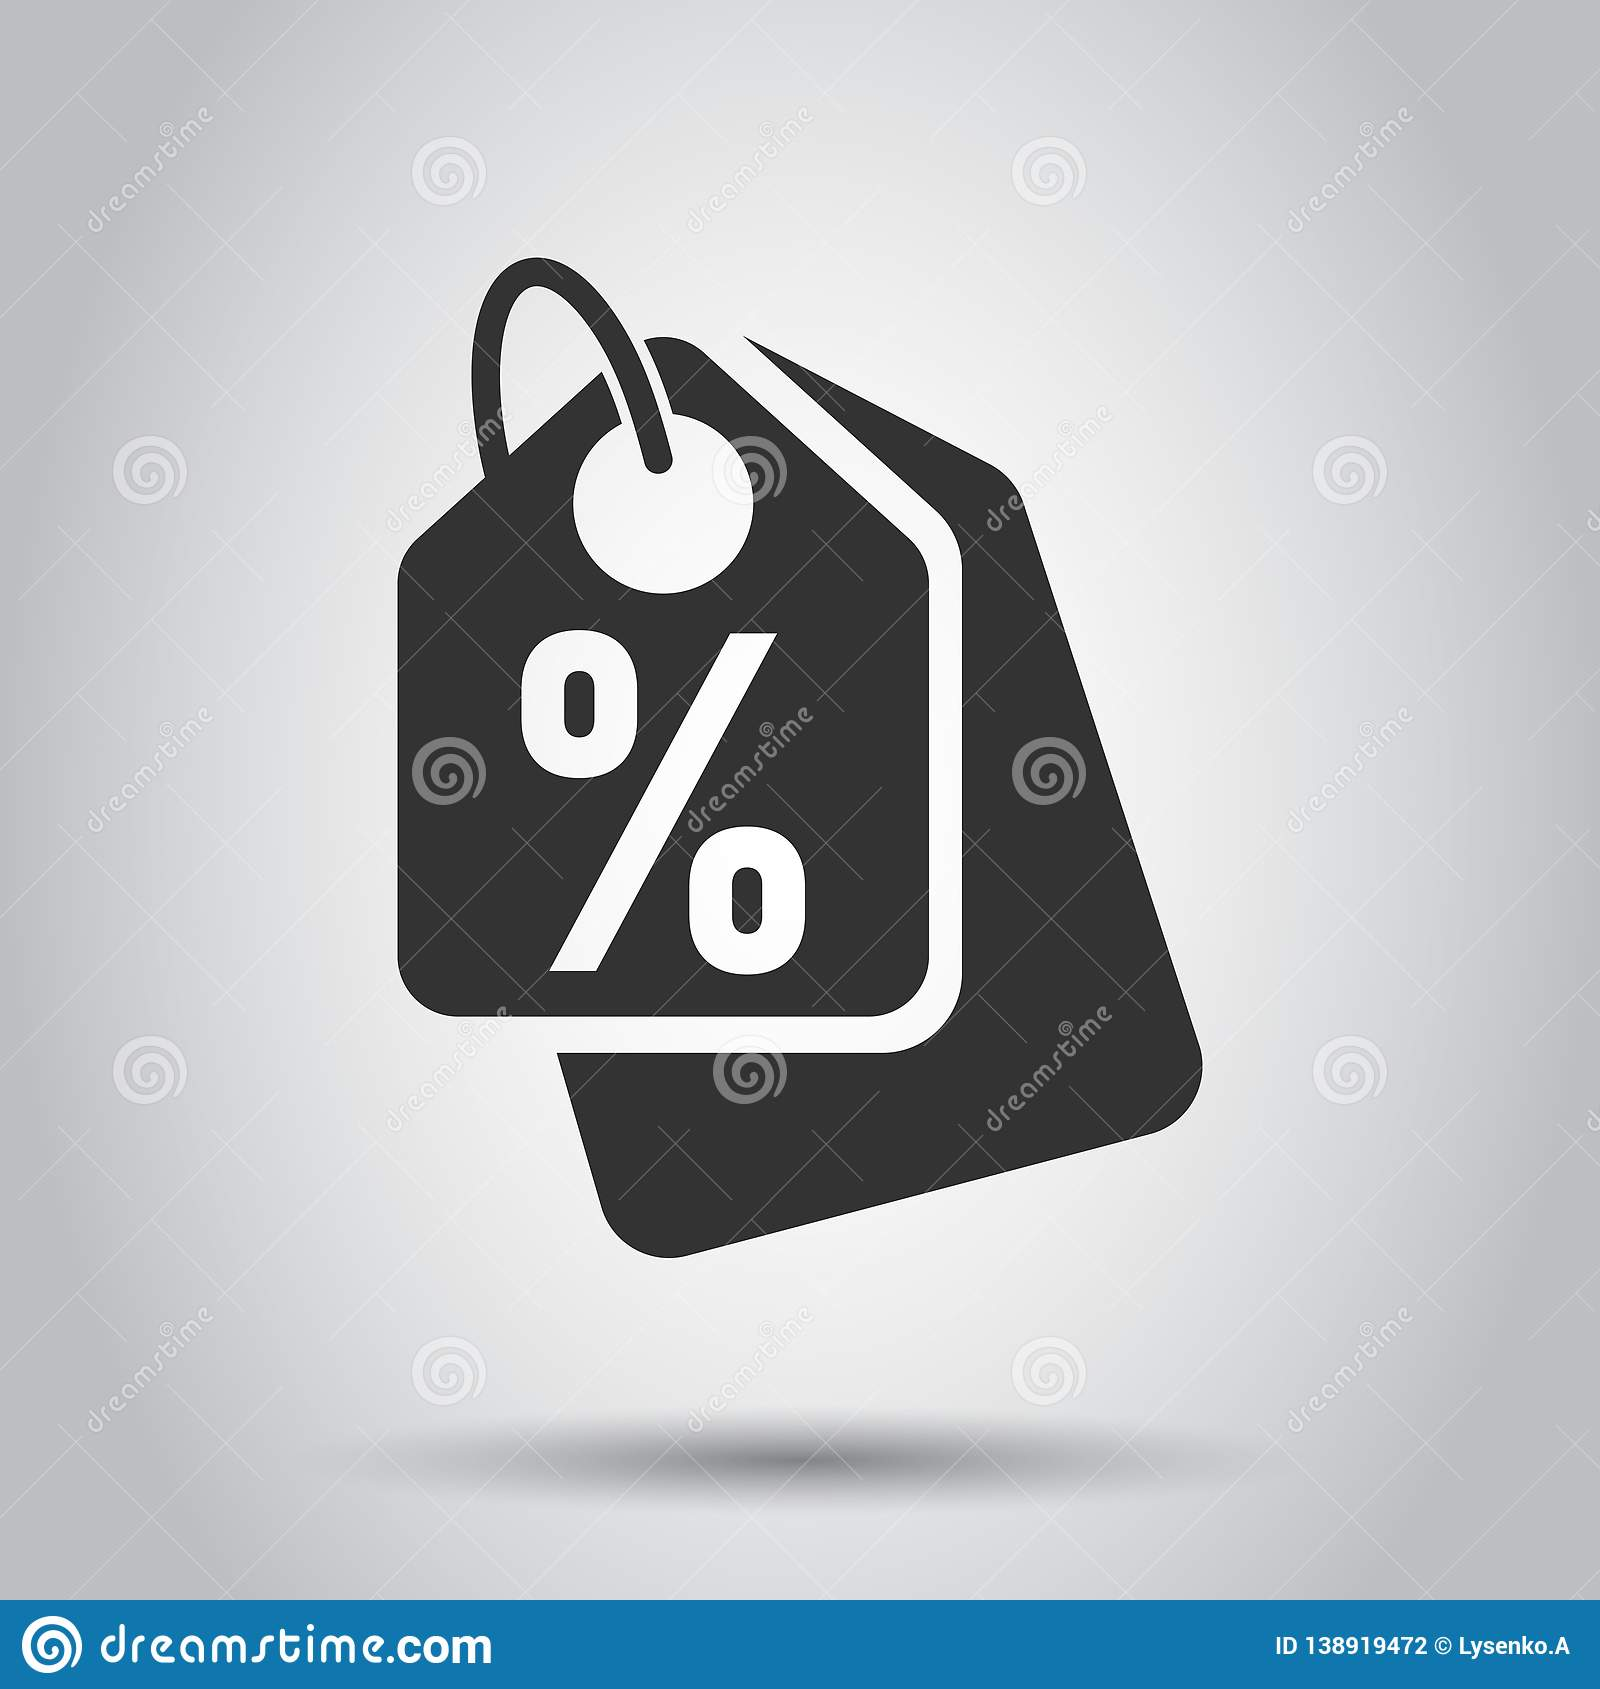 Discount shopping tag icon in flat style. Discount percent coupon illustration on white background. Shop badge business concept